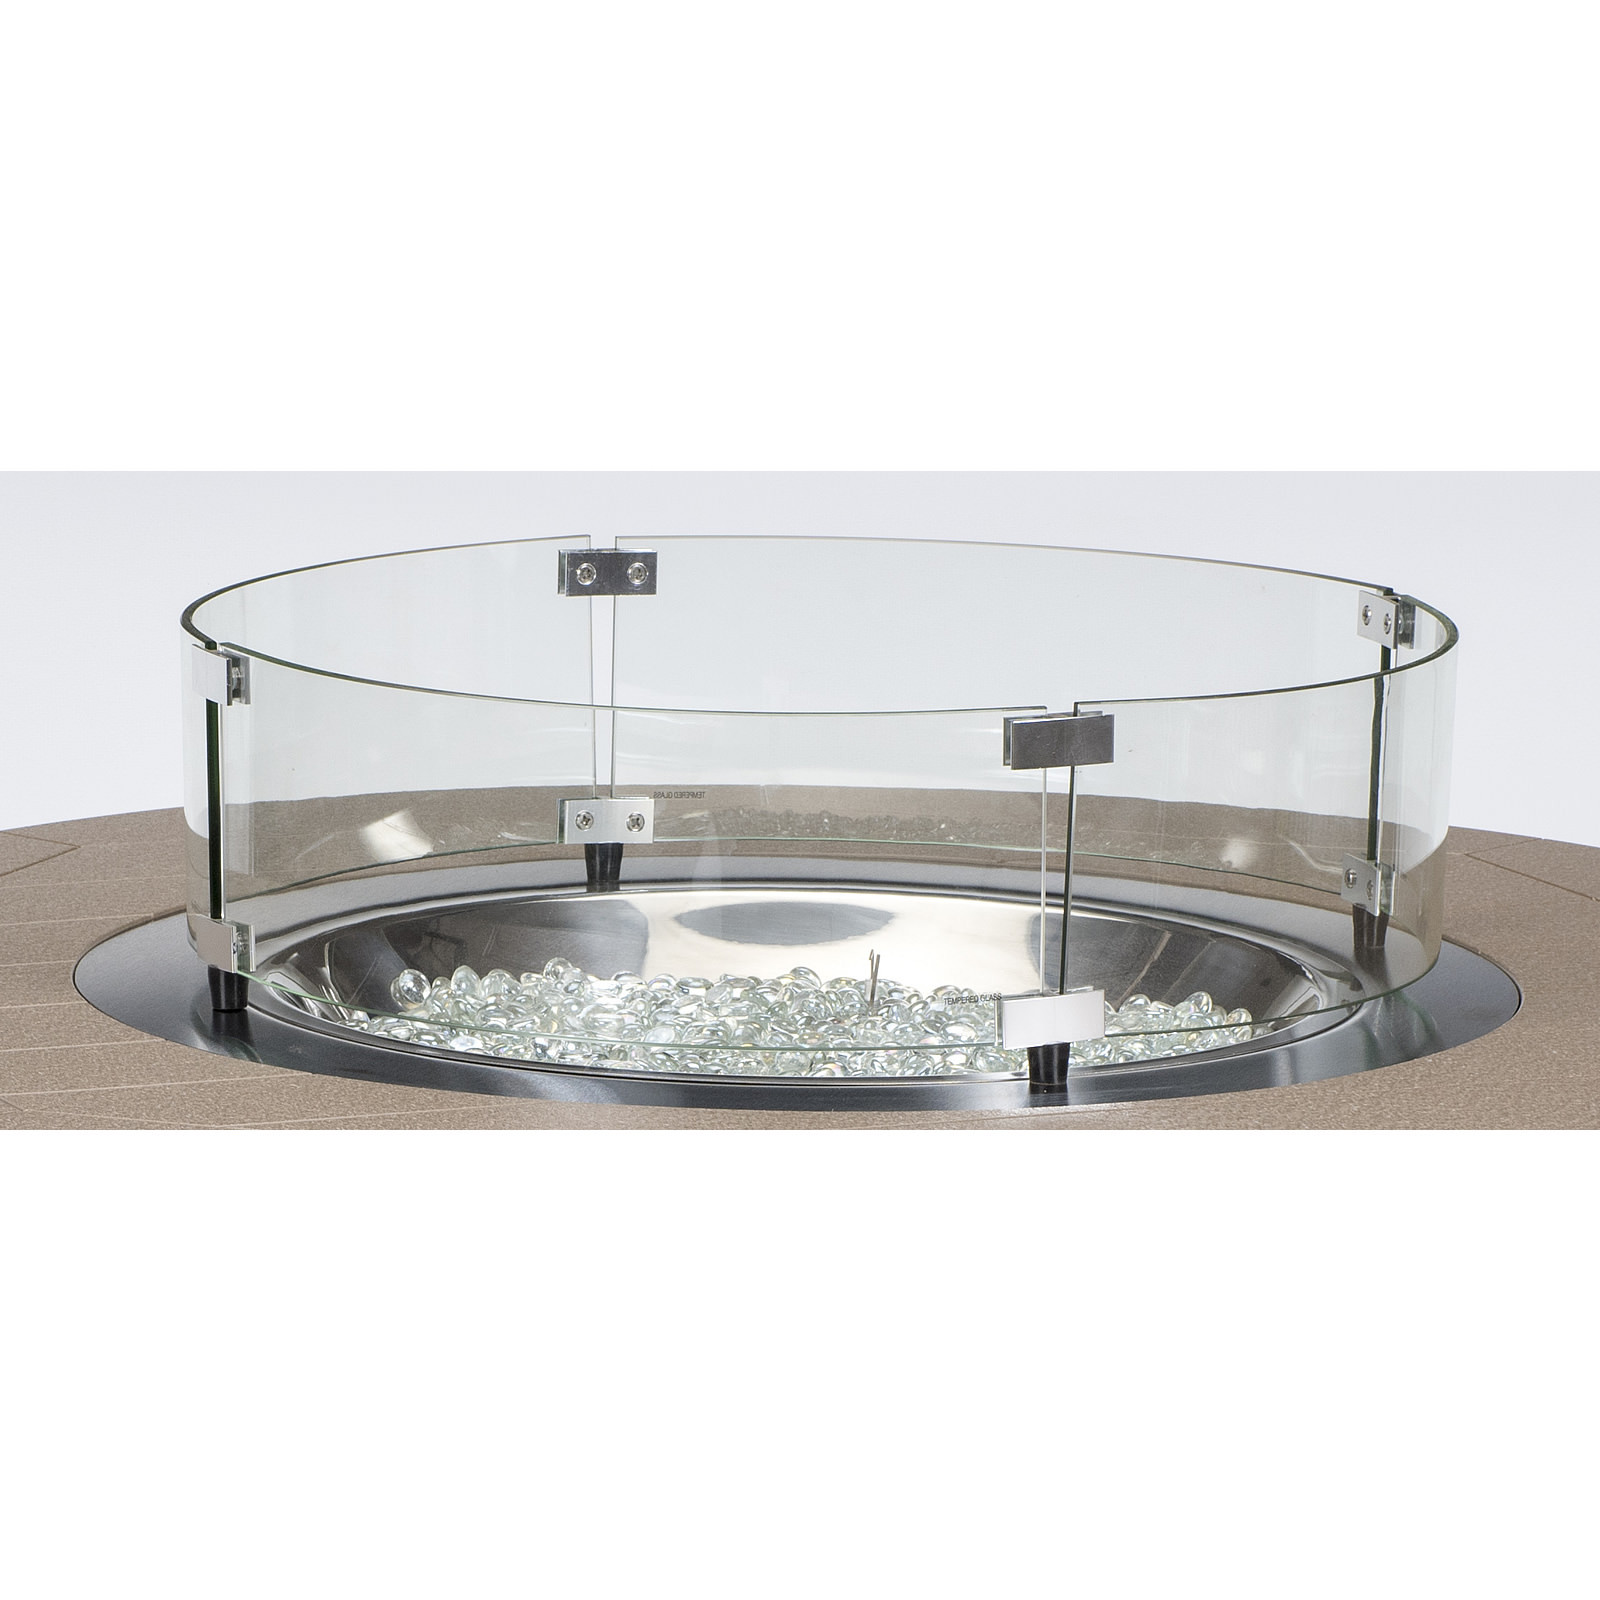 Berlin Gardens 20-R Round Glass Wind Guard